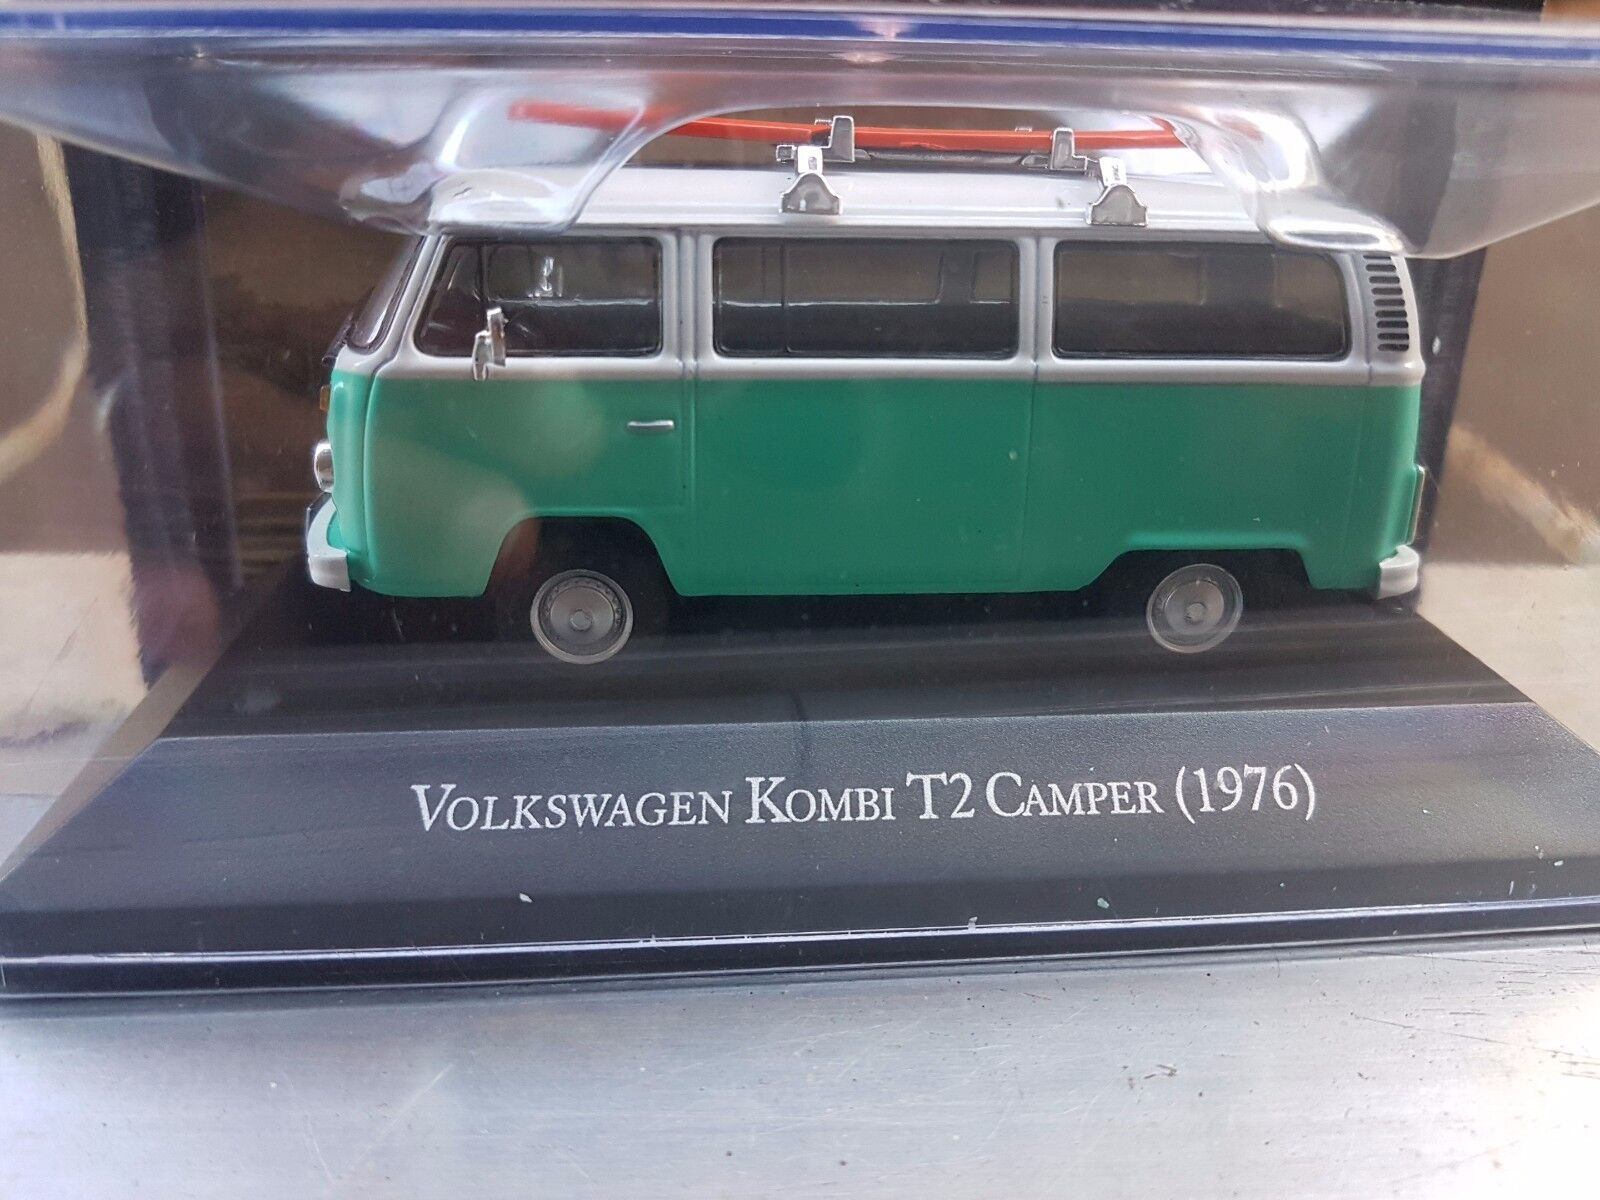 Amazing Cars From Brazil - Volkswagen Kombi T2 Camper Surf